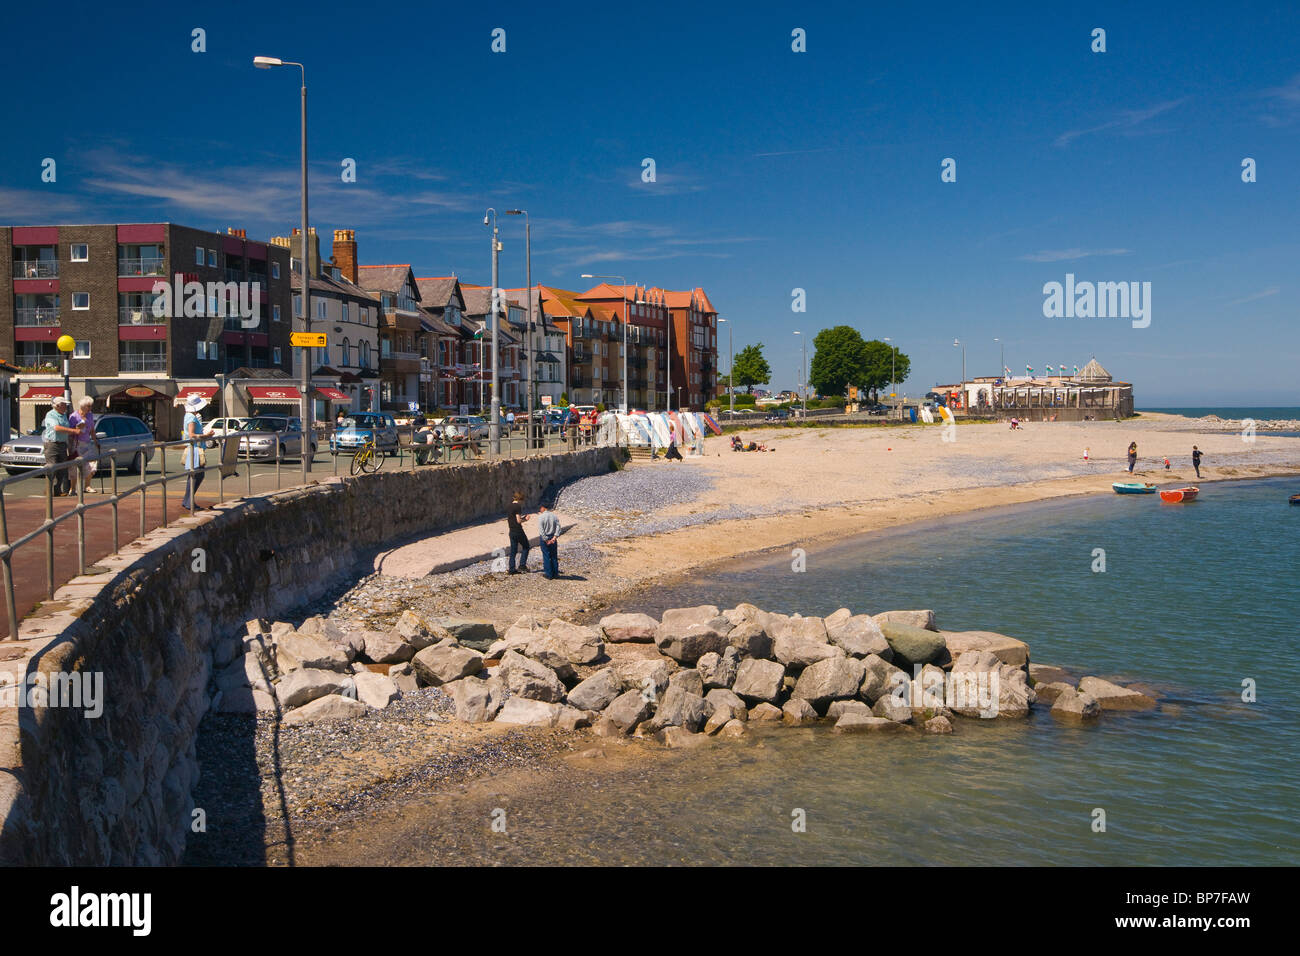 Rhos on Sea, Colwyn Bay, Beach, seafront, north Wales, UK Stock Photo